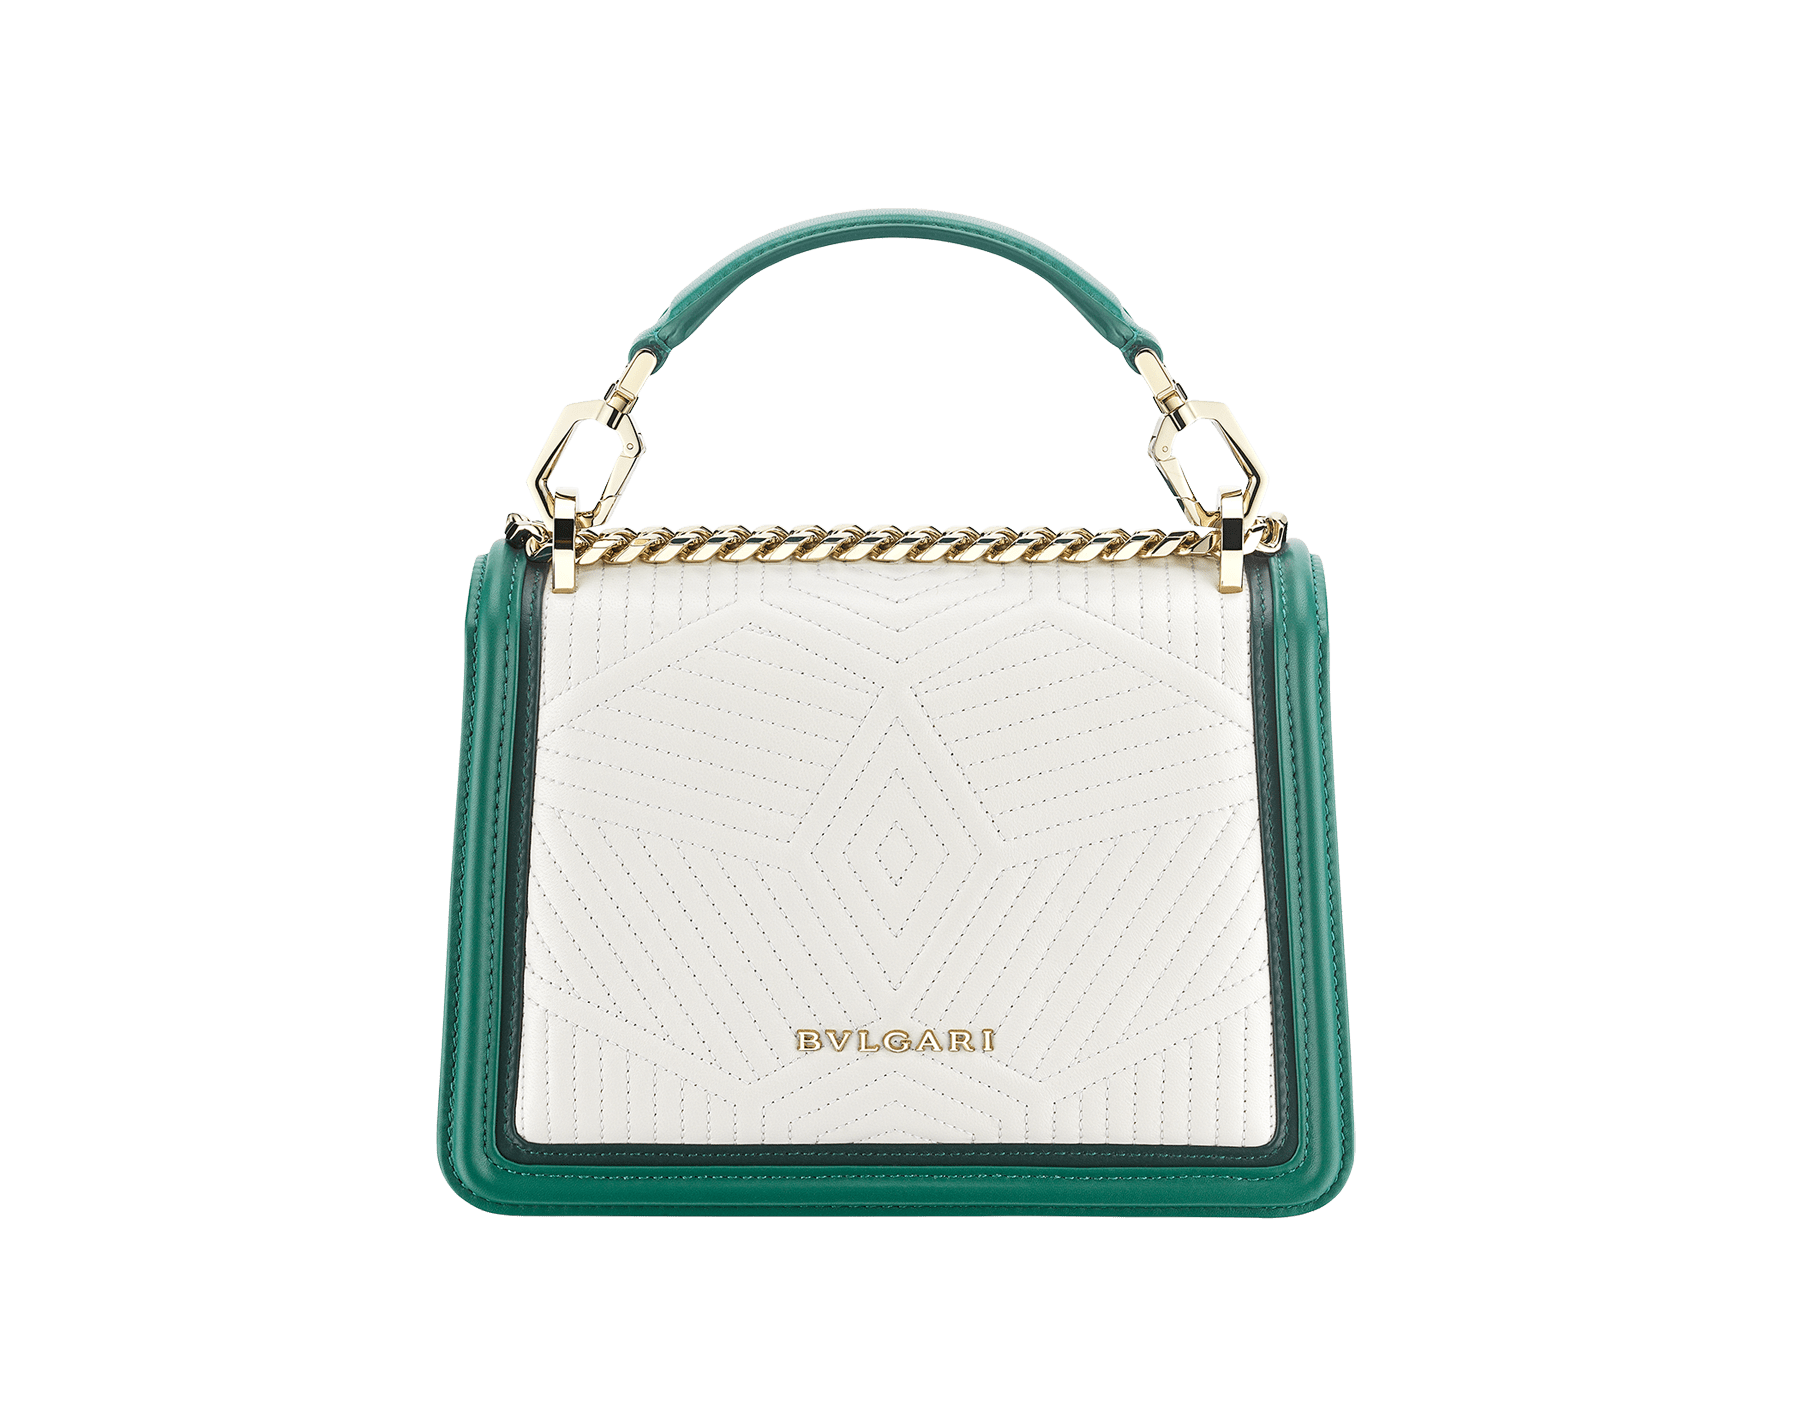 """Serpenti Diamond Blast"" top handle bag in white agate quilted nappa leather and emerald green smooth calf leather frames. Iconic snakehead closure in light gold-plated brass enriched with matte black and shiny emerald green enamel and black onyx eyes. 289944 image 3"